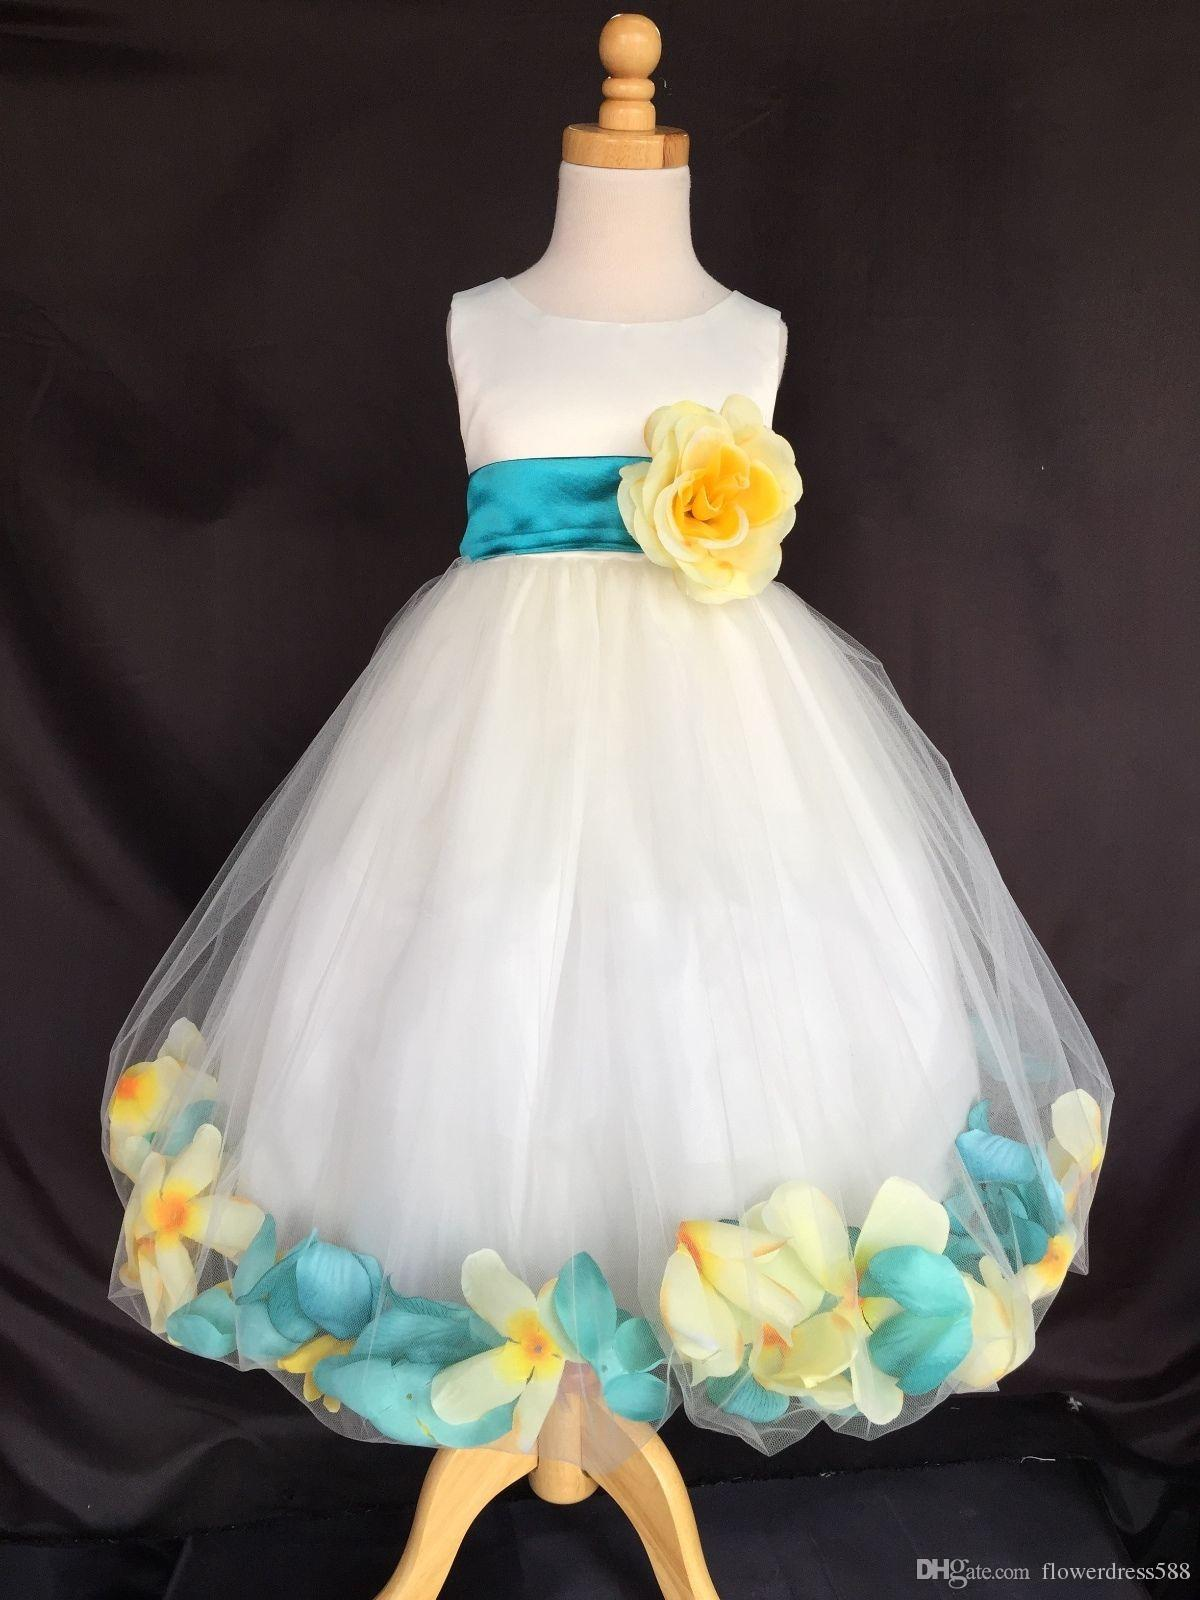 Flower Girl Bridesmaids Easter Canary Yellow Teal Petals Ivory Dress